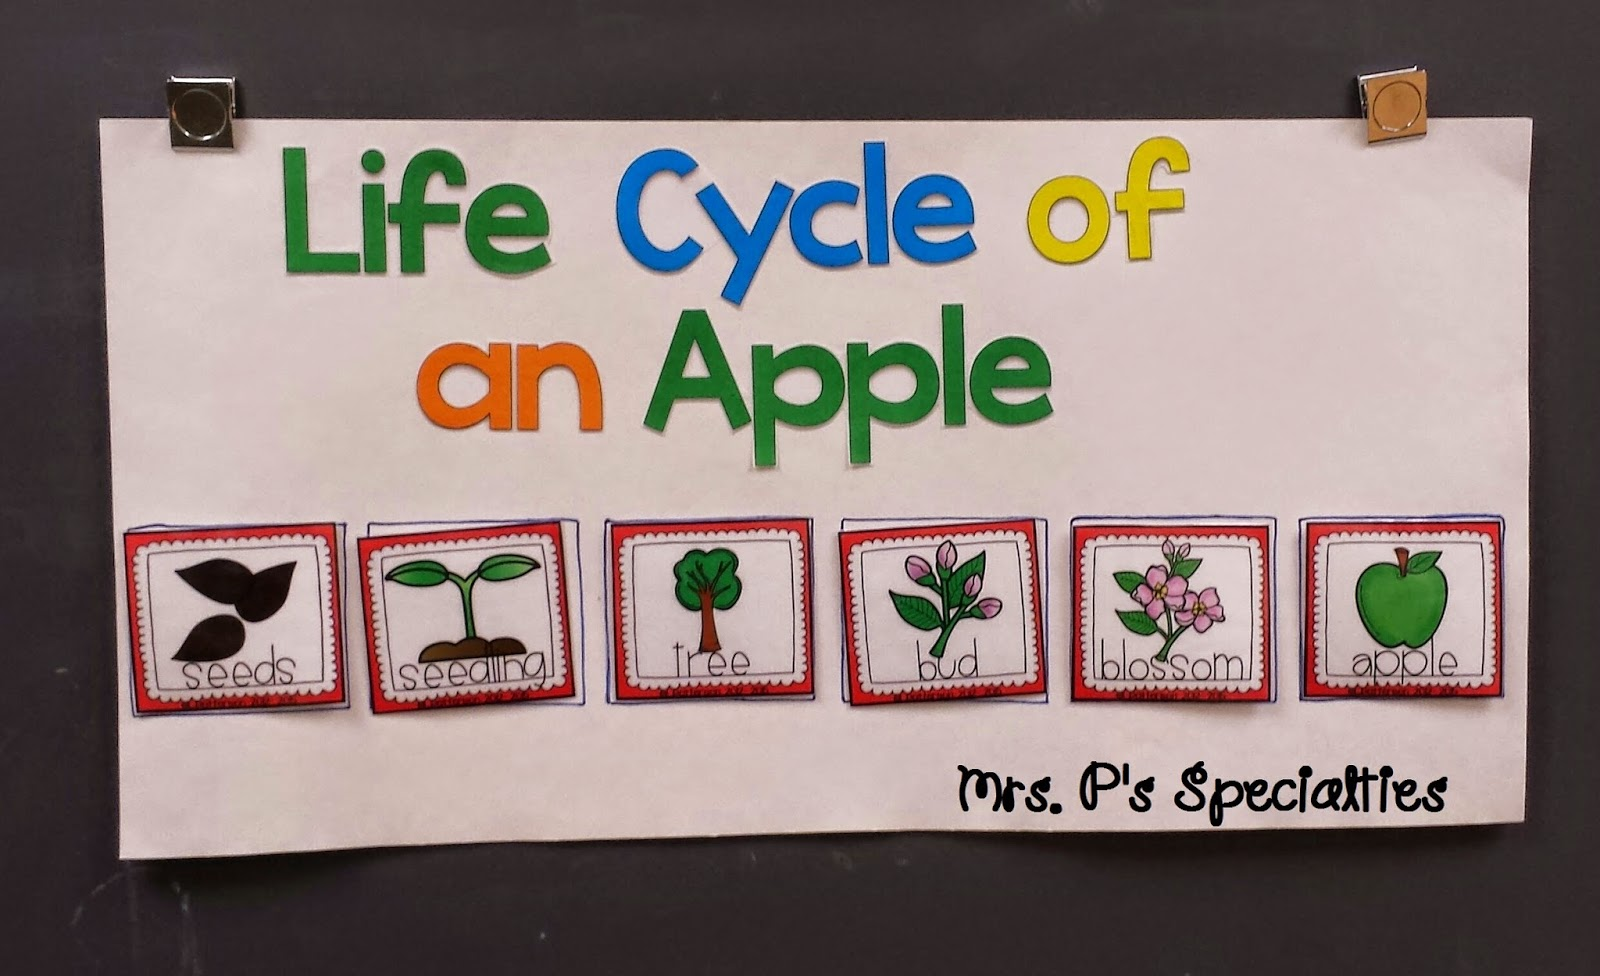 photo of the life cycle of an apple poster